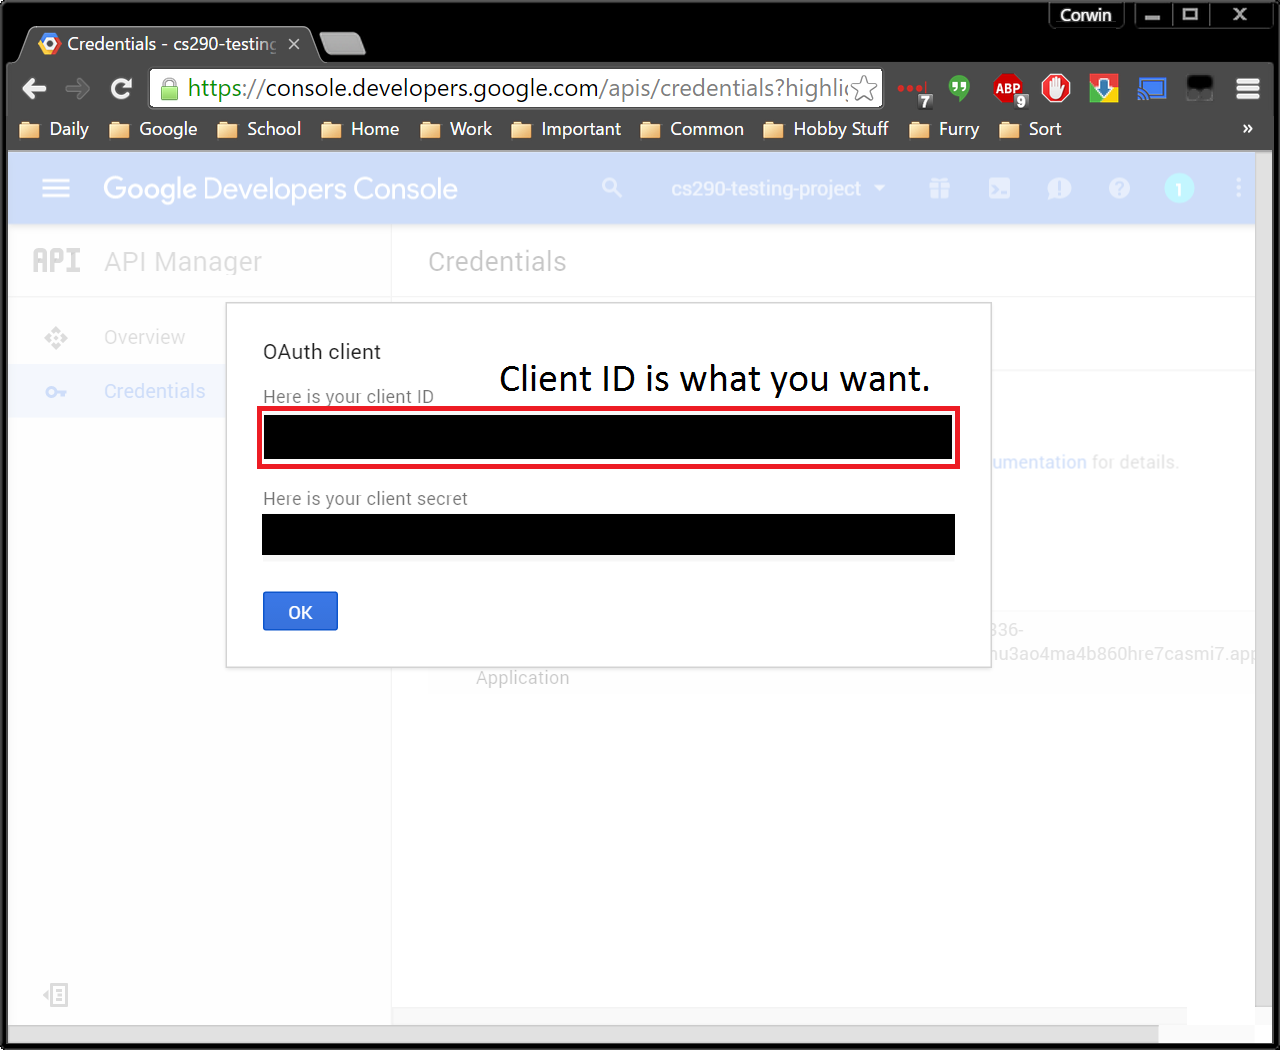 10 - OAuth Client Information